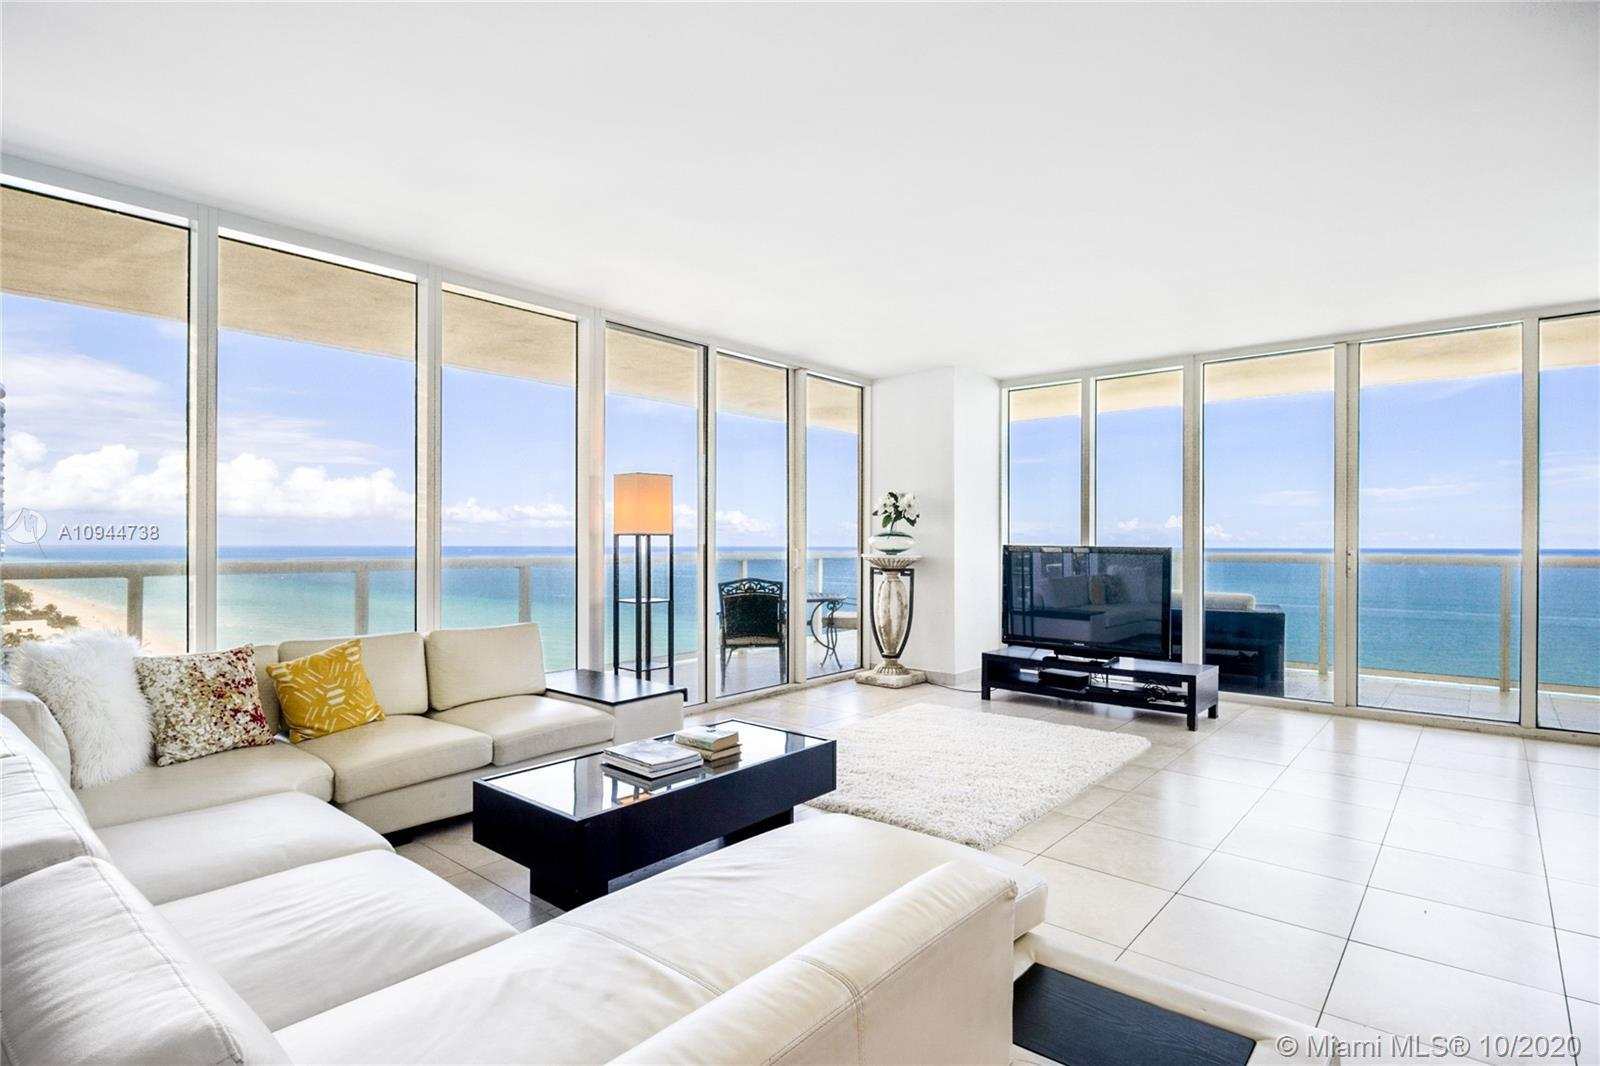 Direct ocean front corner unit with 2,065 sq. feet, wraparound balcony with spectacular unobstructed